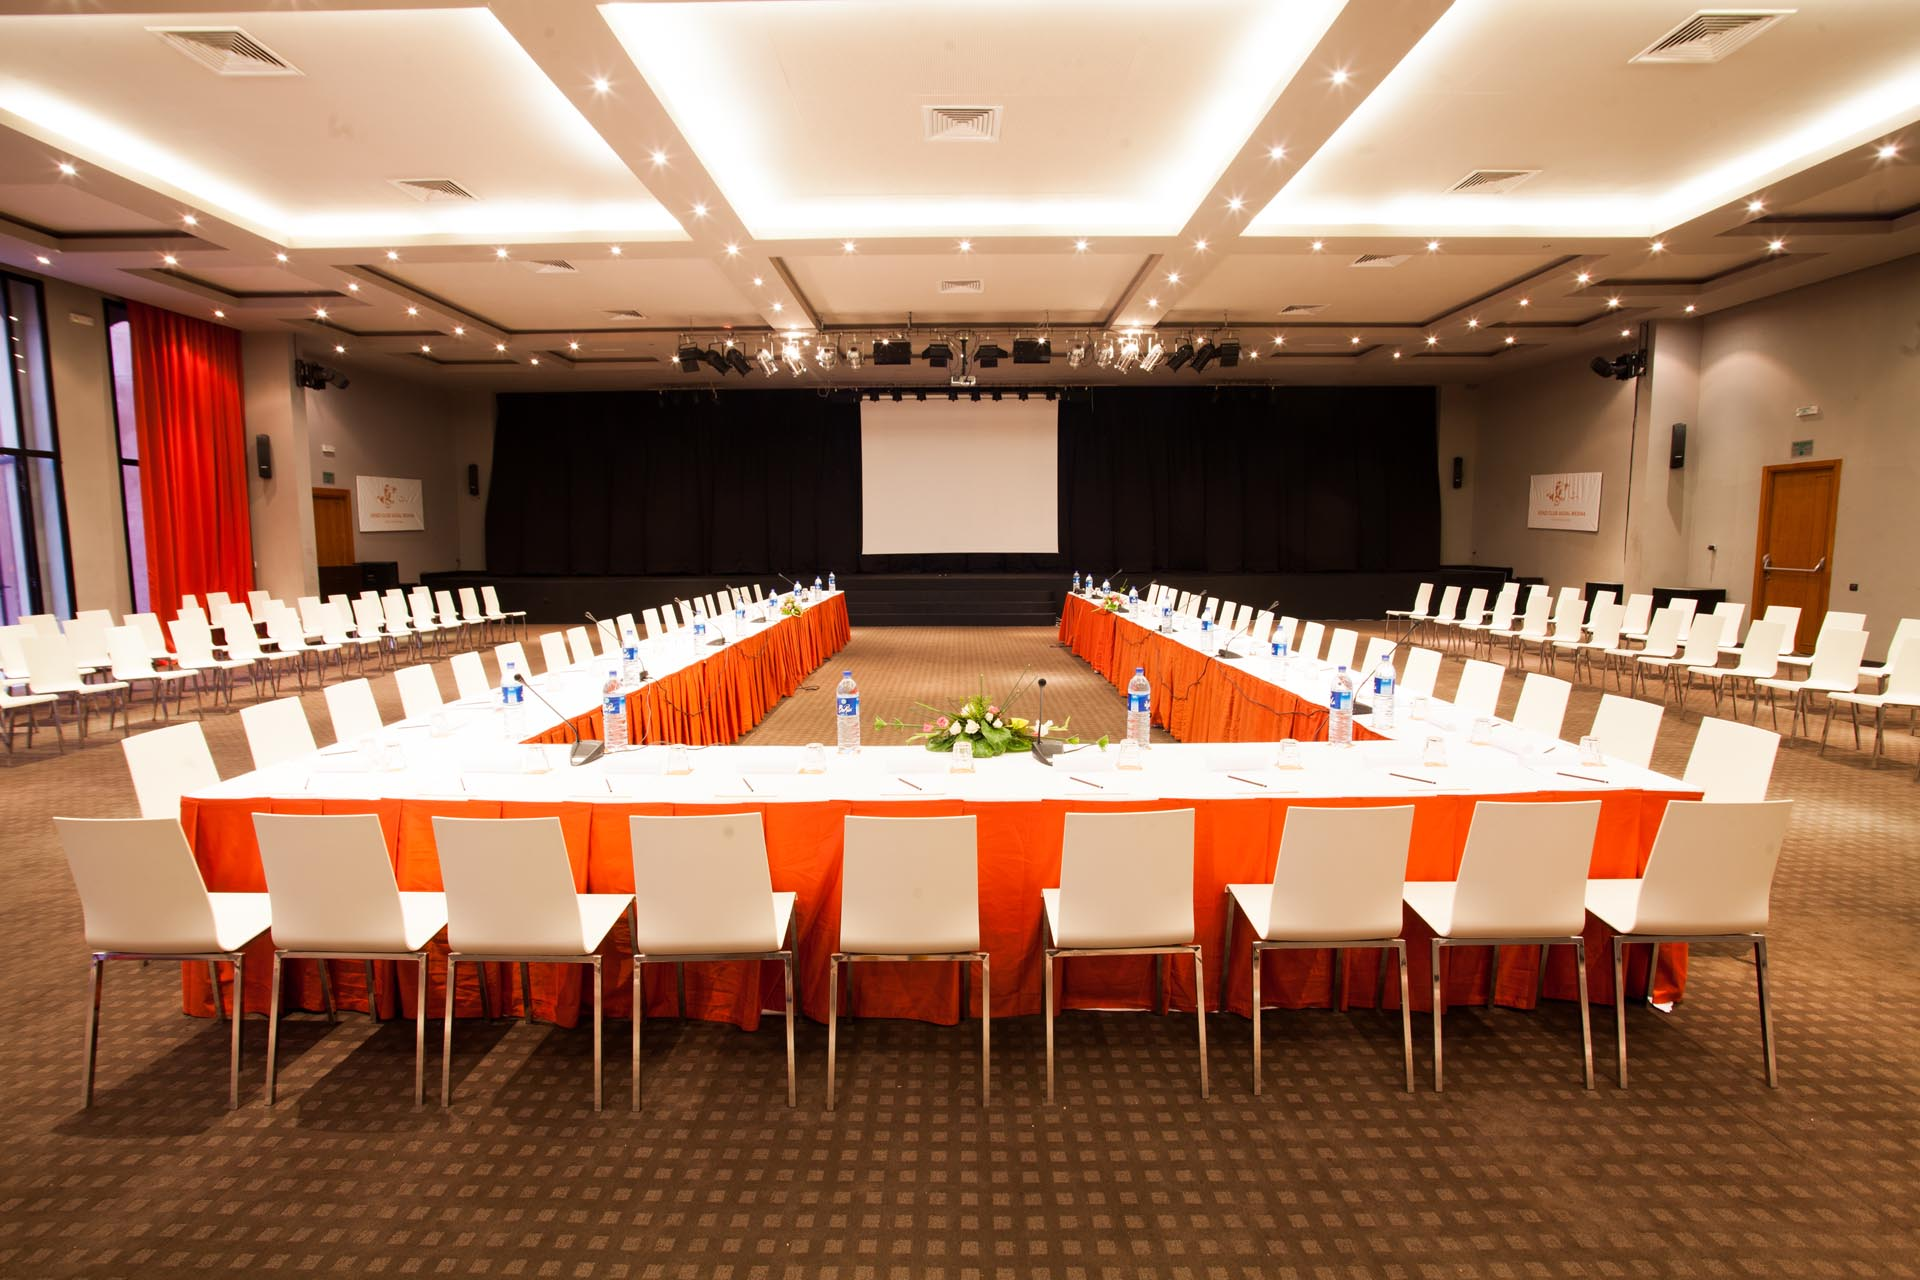 Meetings & Events at Kenzi Club Agdal Medina Hotel in Marrakesh,